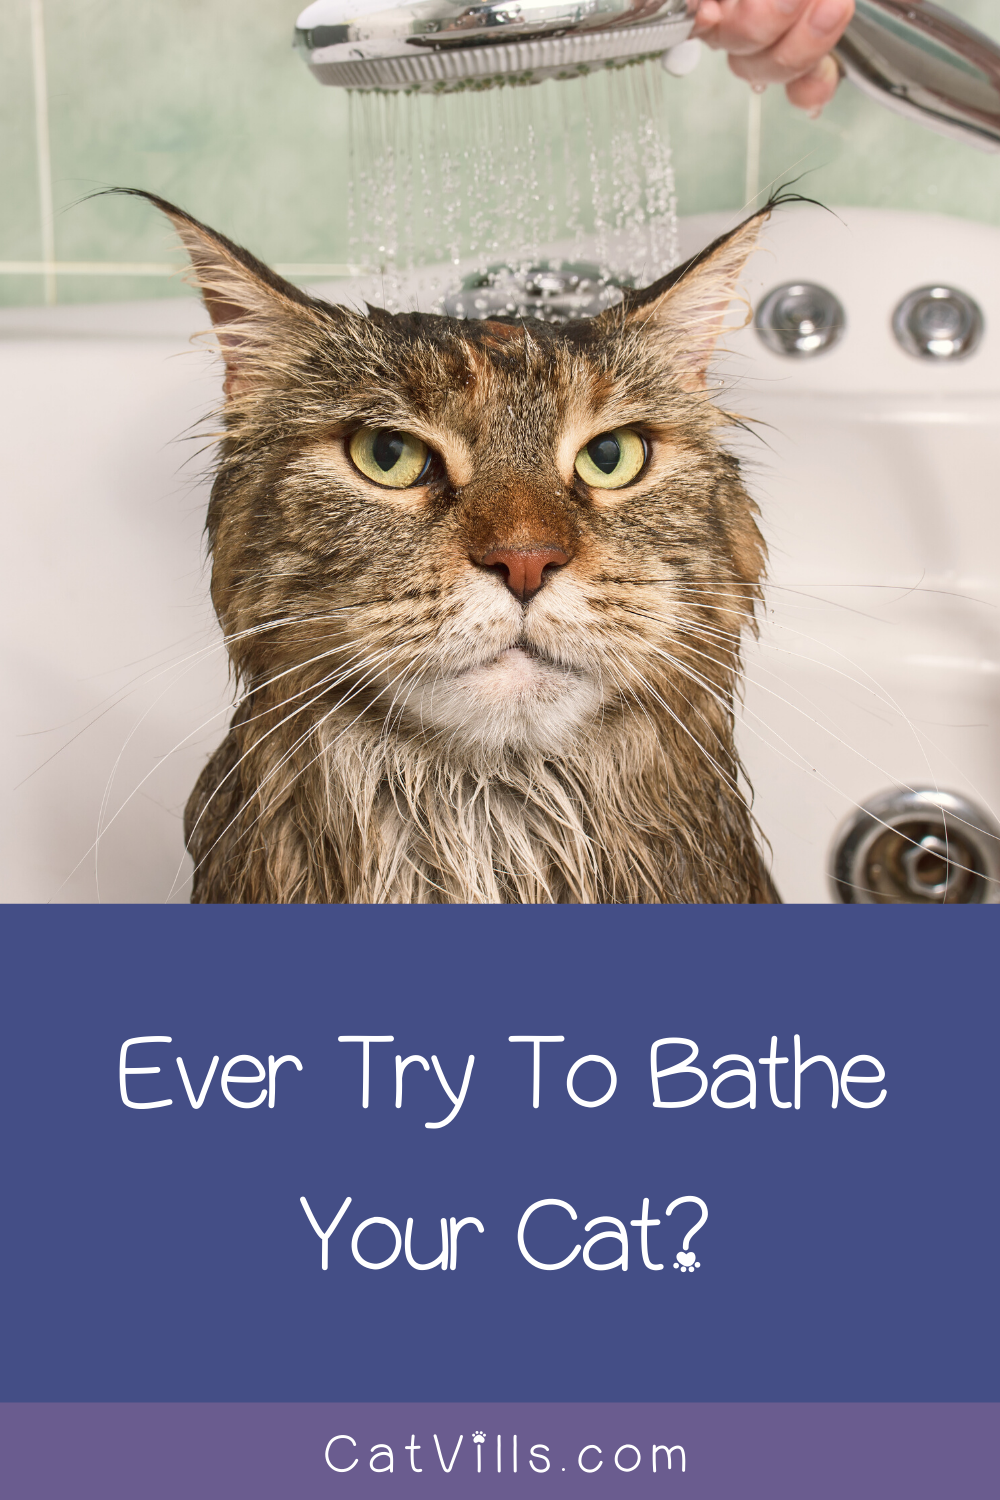 7 Foolproof Tips to Bathe Your Cat in 2020 Cats, Cat